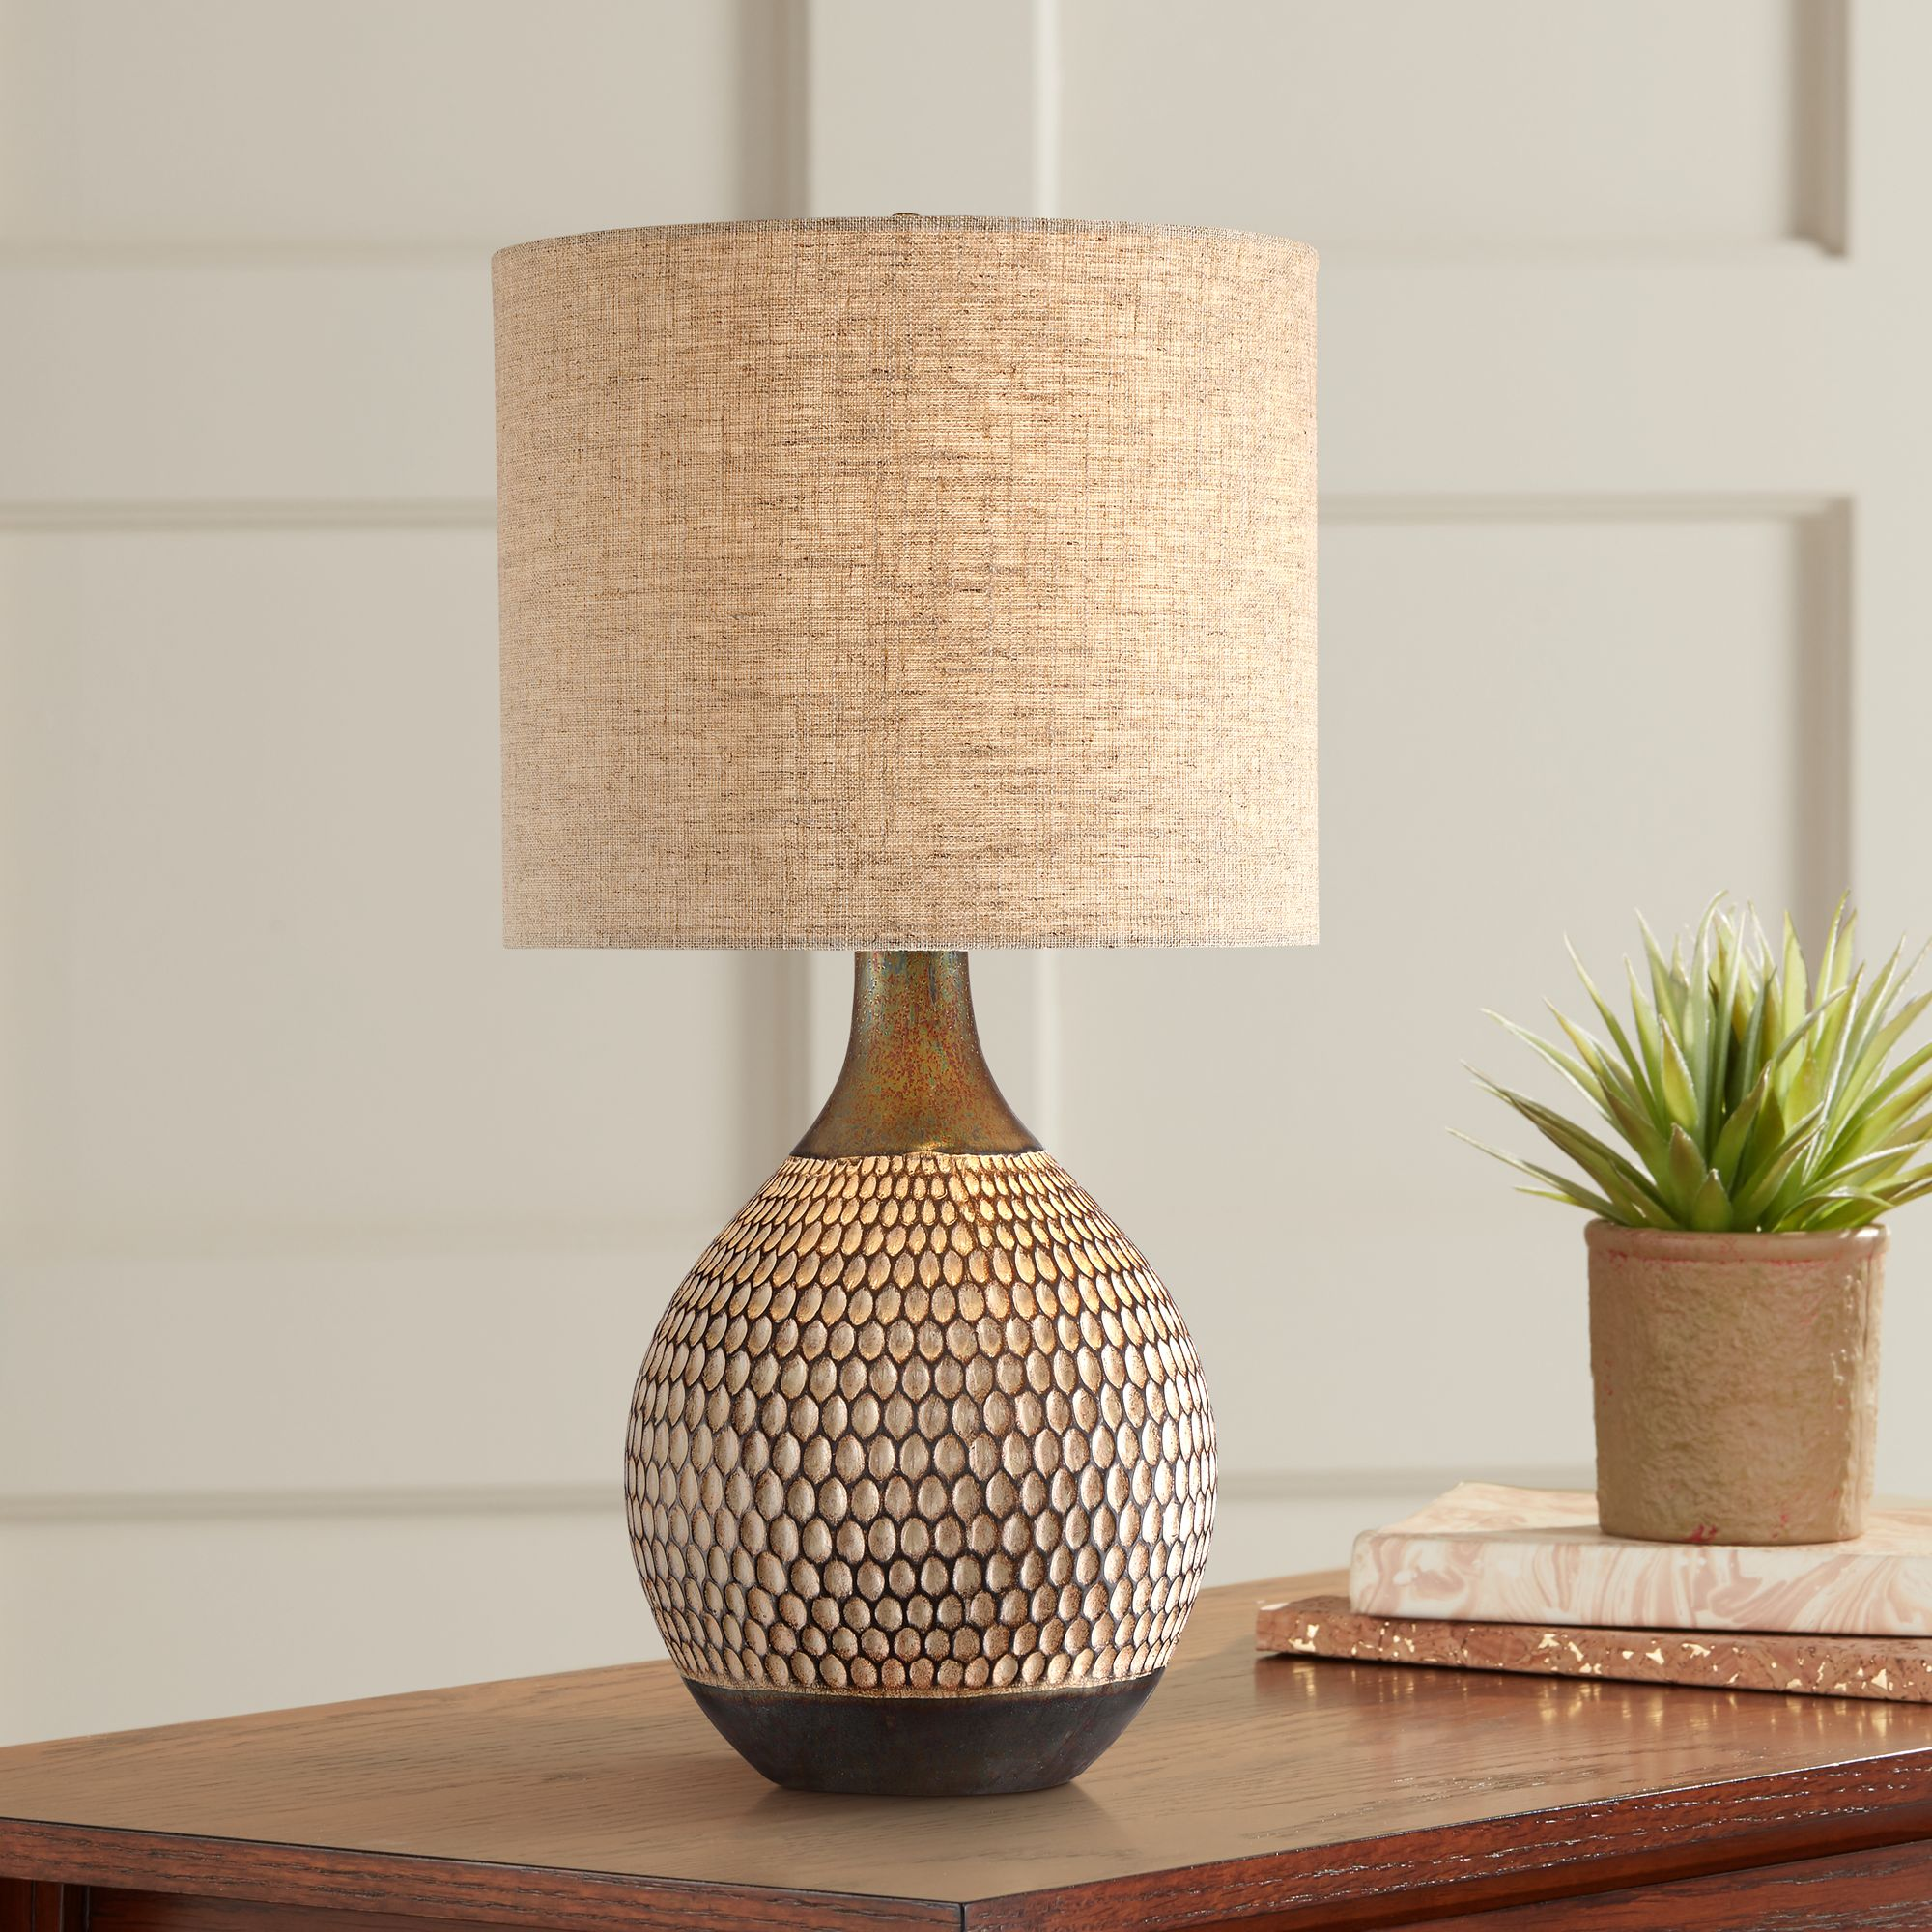 Details About Mid Century Modern Accent Table Lamp Brown Ceramic Living Room Bedroom Bedside